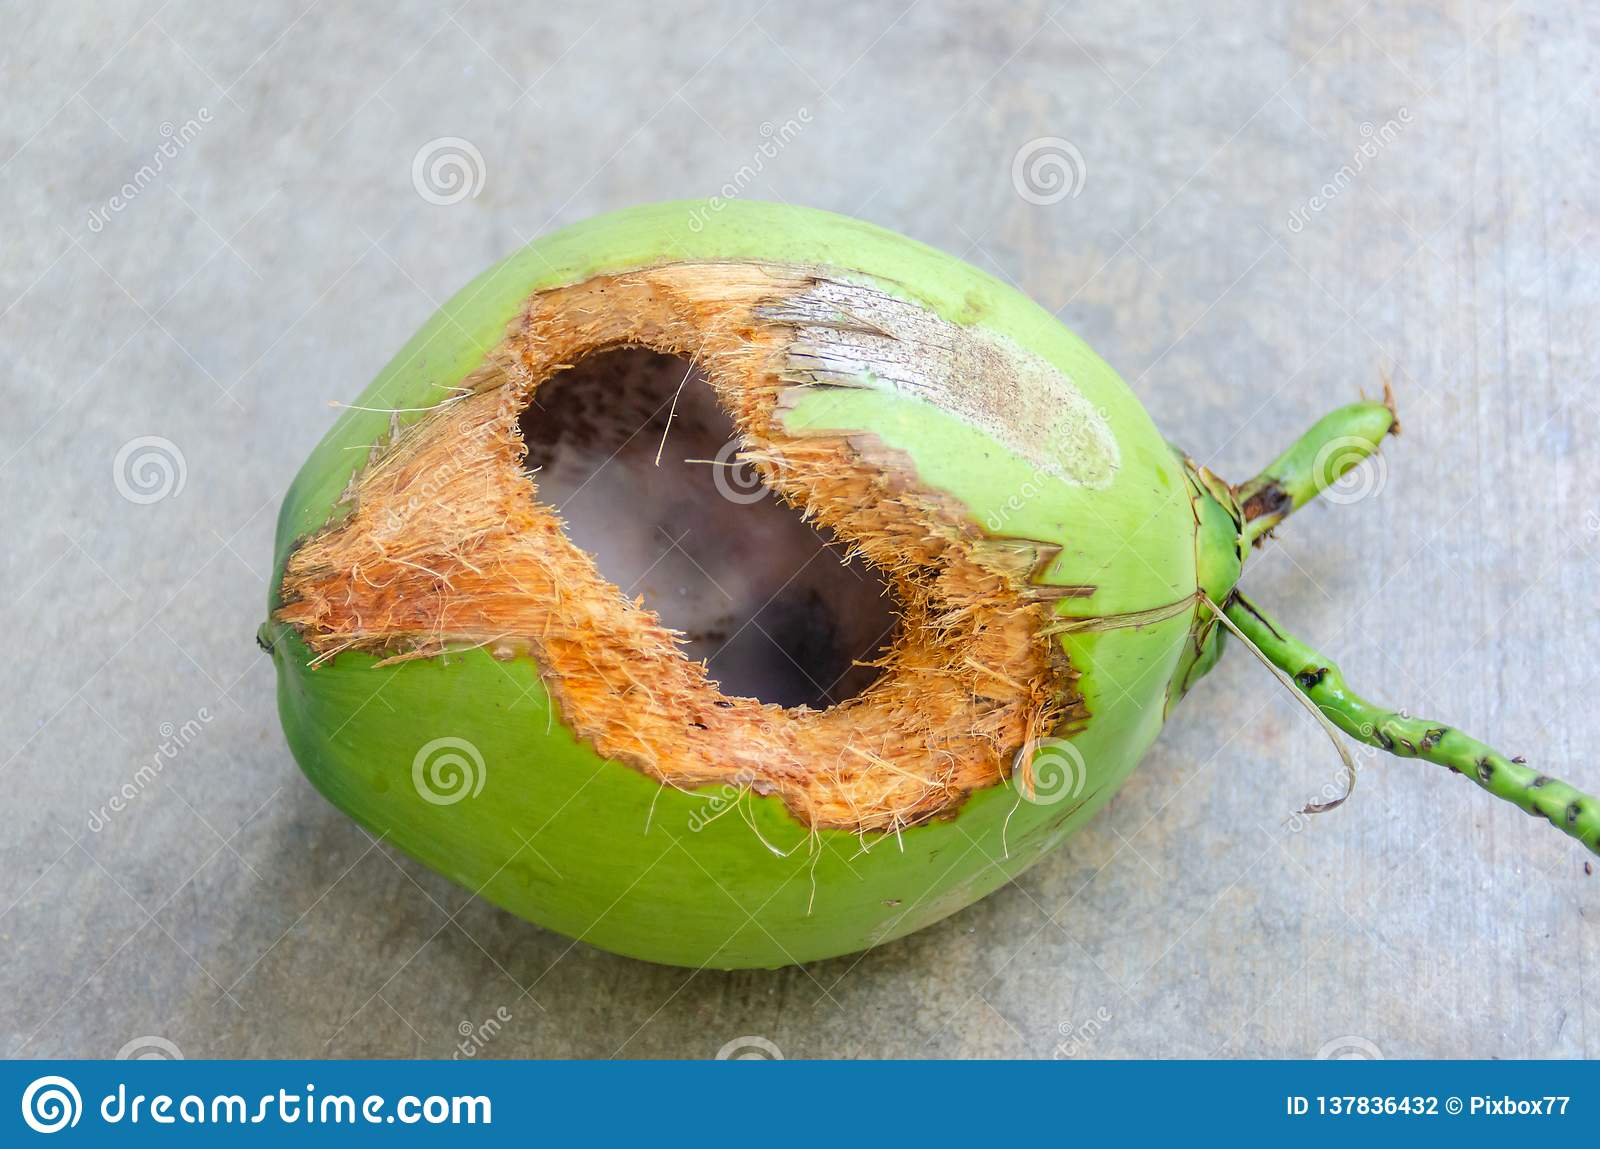 Green coconut with hole on ground